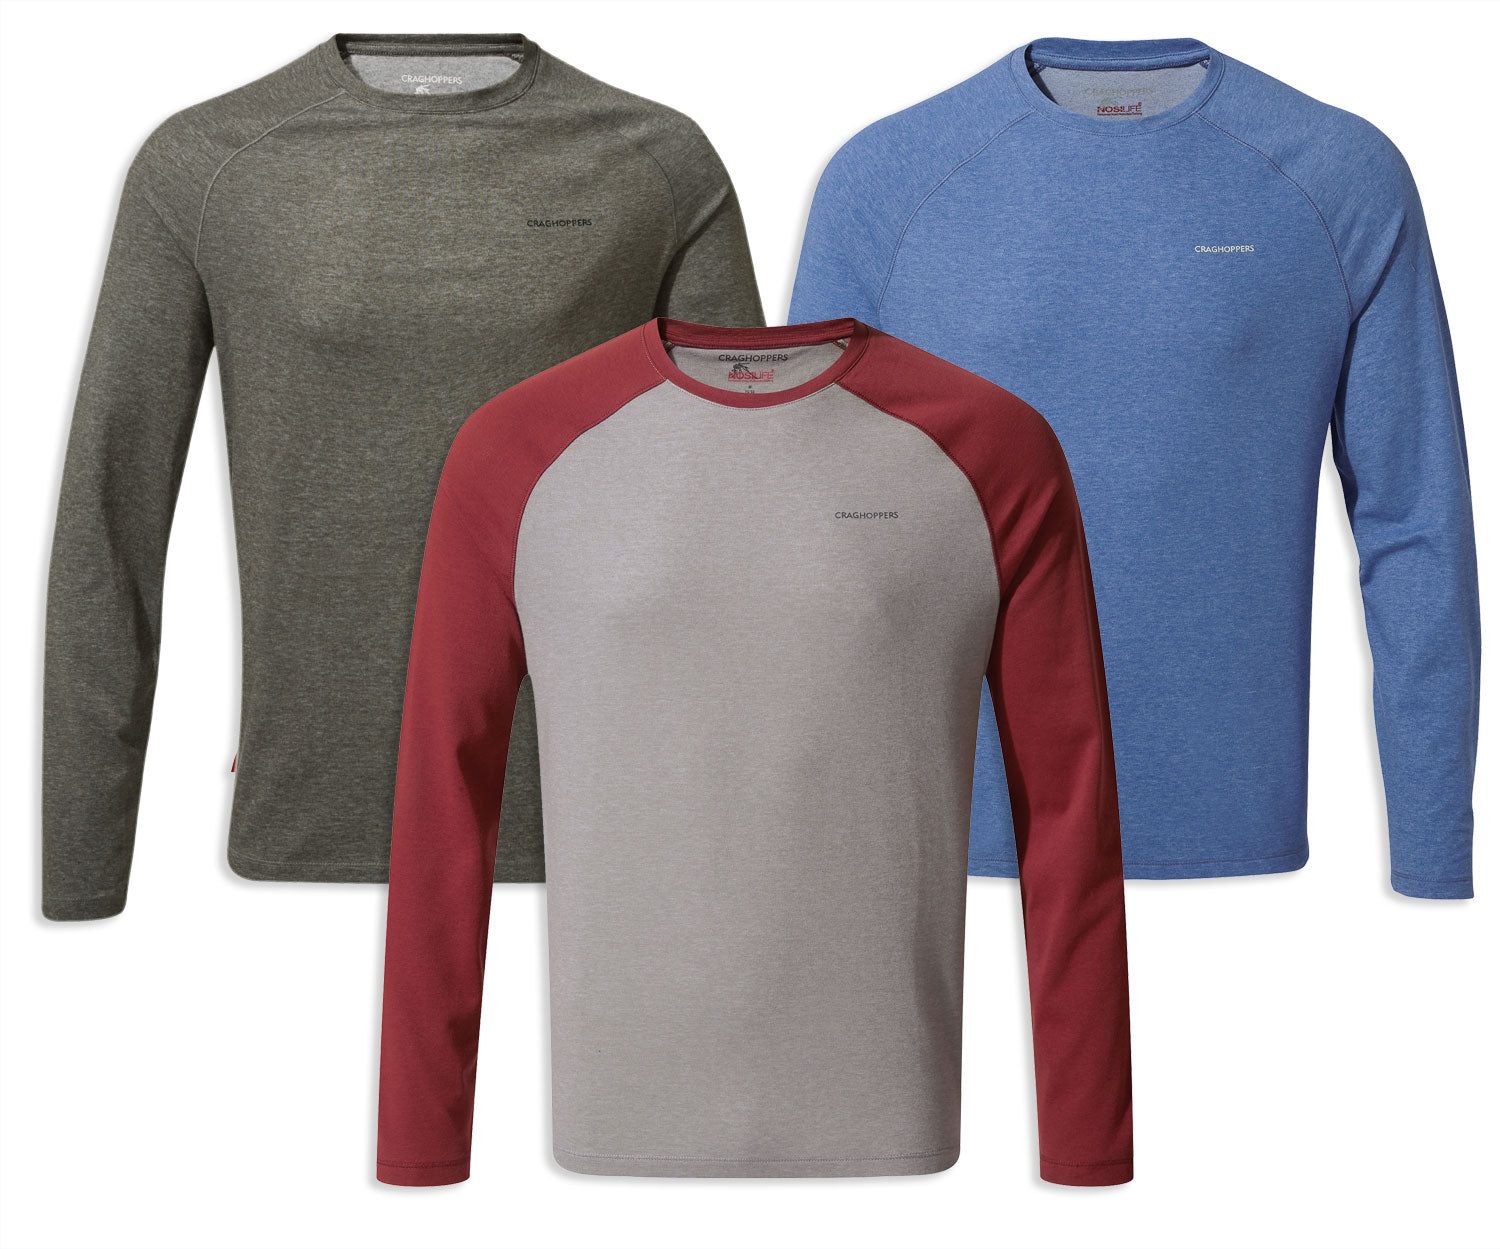 Craghoppers NosiLife Bayame Long Sleeved Tee in three colours